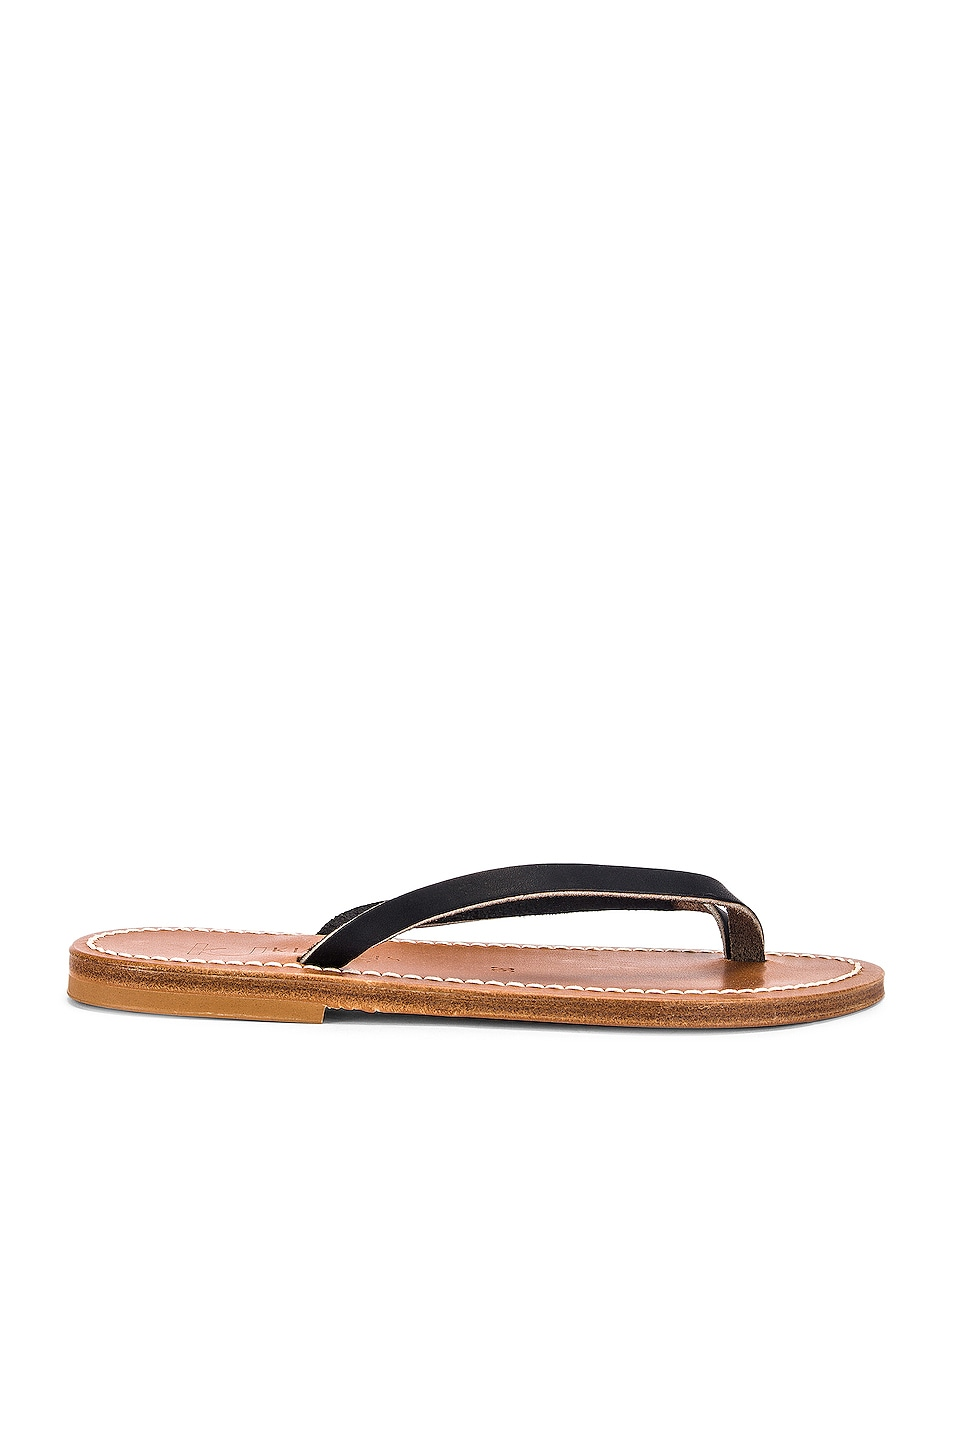 Image 1 of K Jacques Venise Sandal in Pul Noir